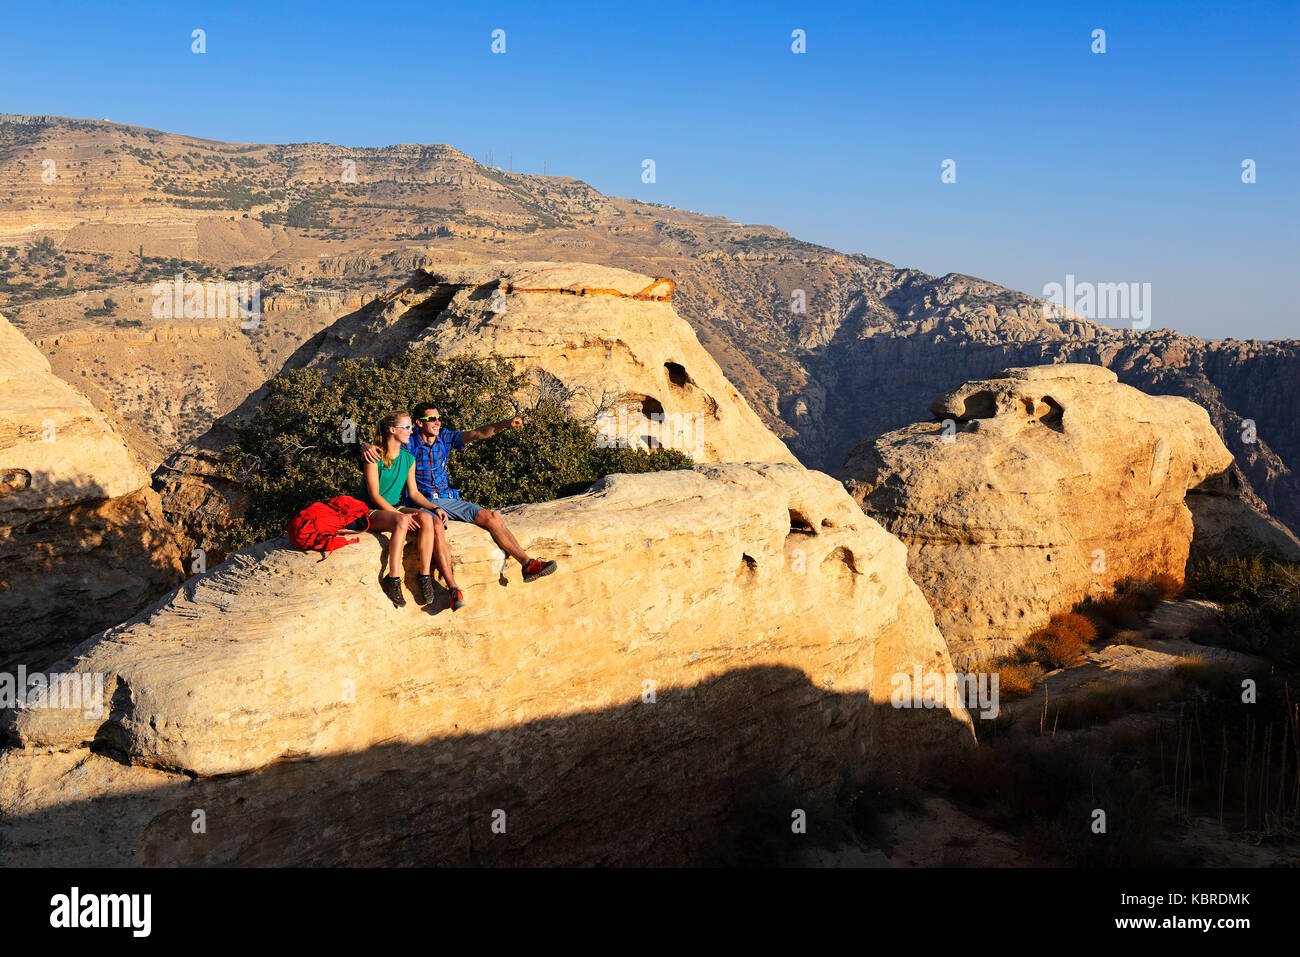 Hikers at White Domes Trail, Dana Biosphere Reserve, Dana, Jordan - Stock Image